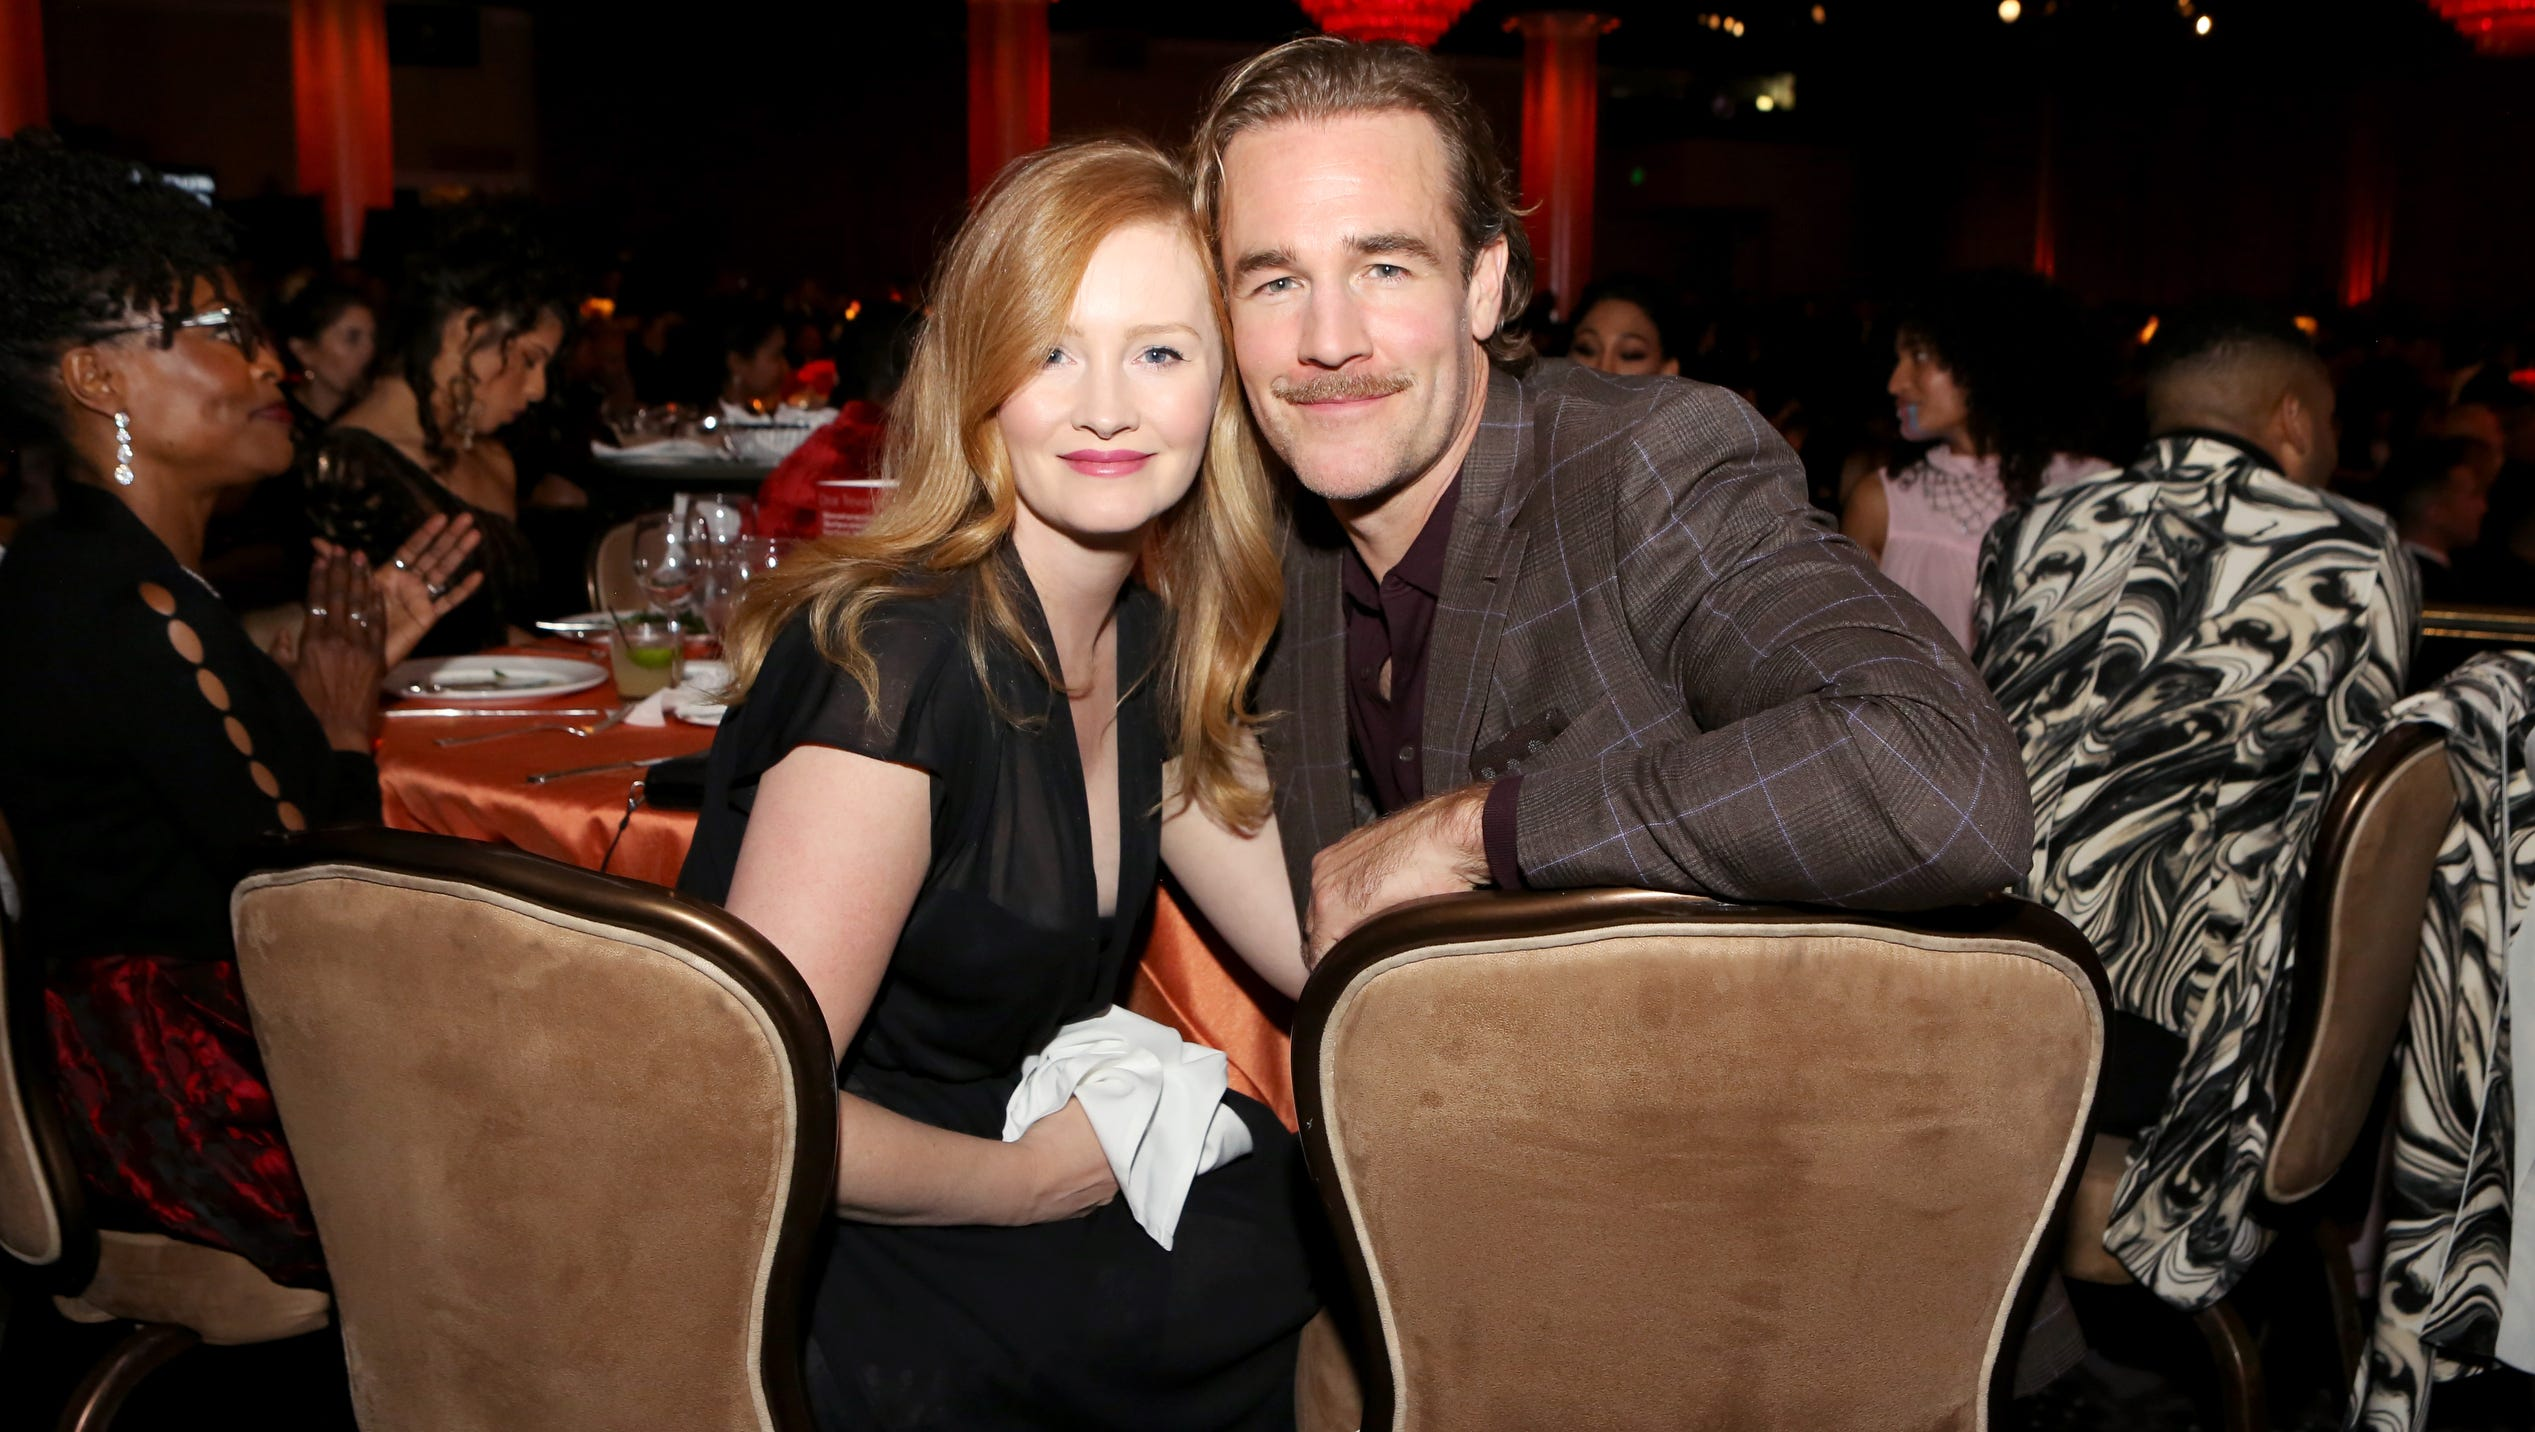 James Van Der Beek gives tragic news on 'DWTS': 'We lost the baby'